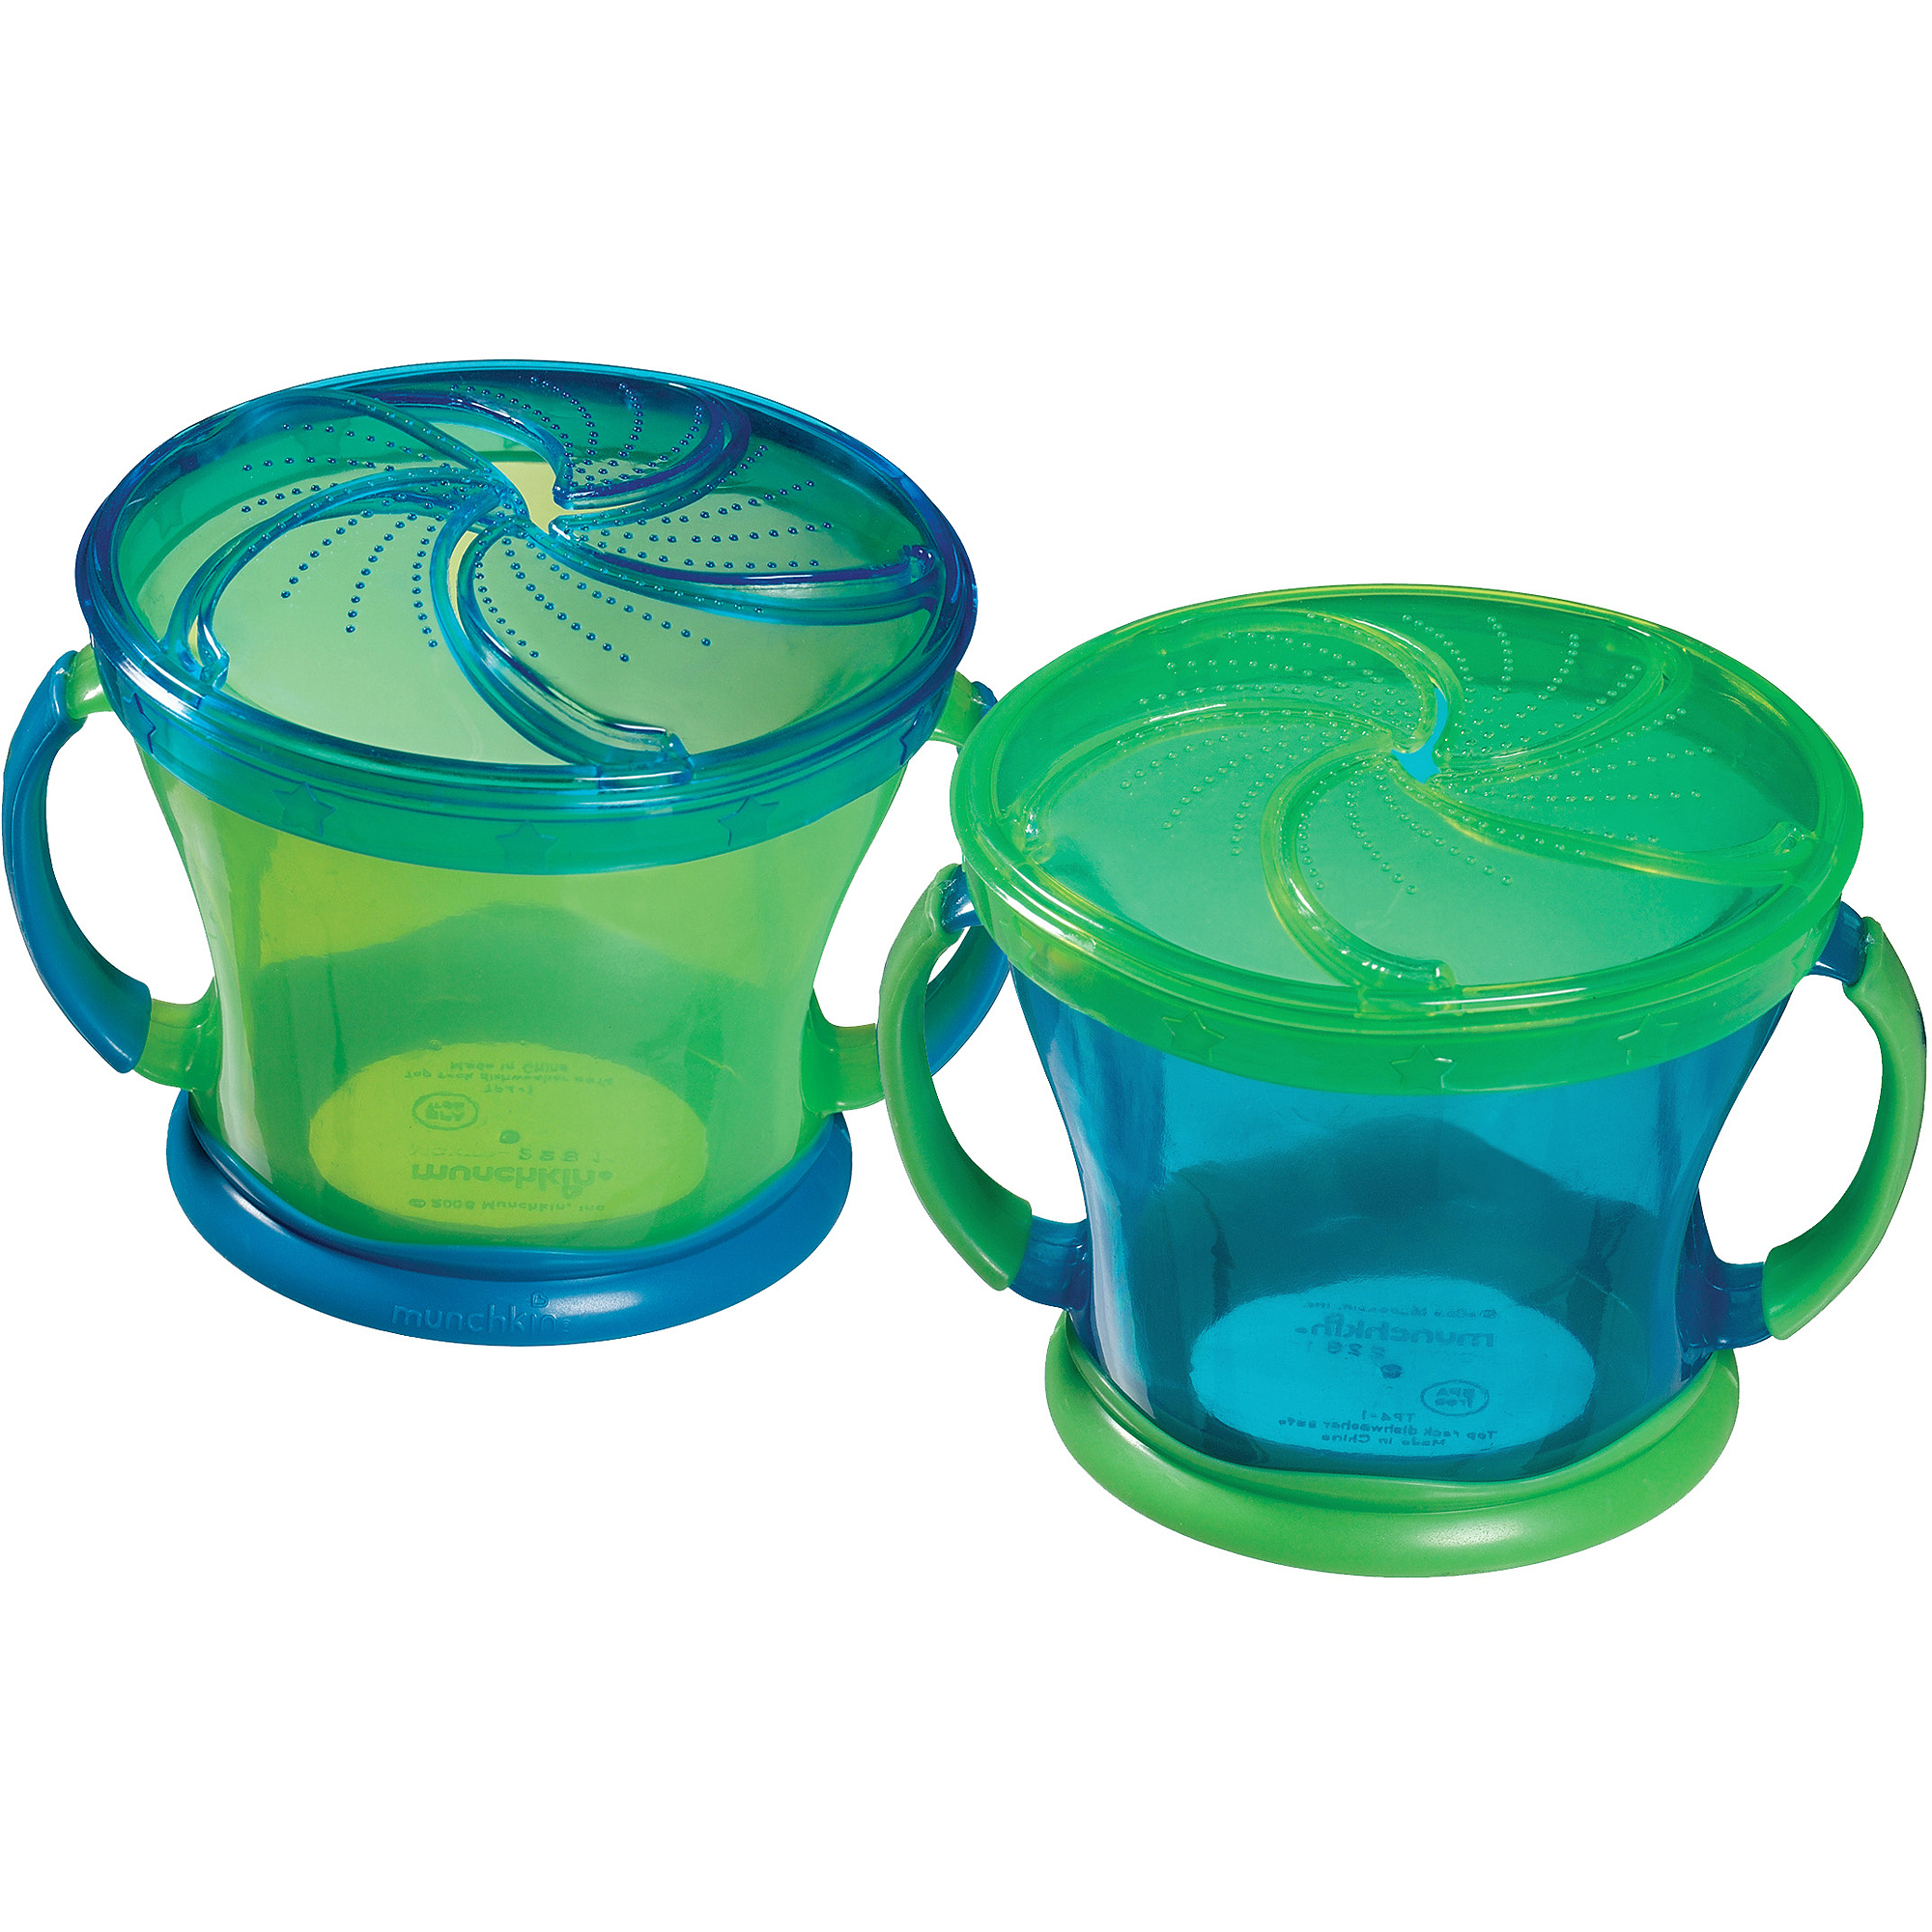 Munchkin Snack Catcher Snack Cup, Colors May Vary, 2 pack